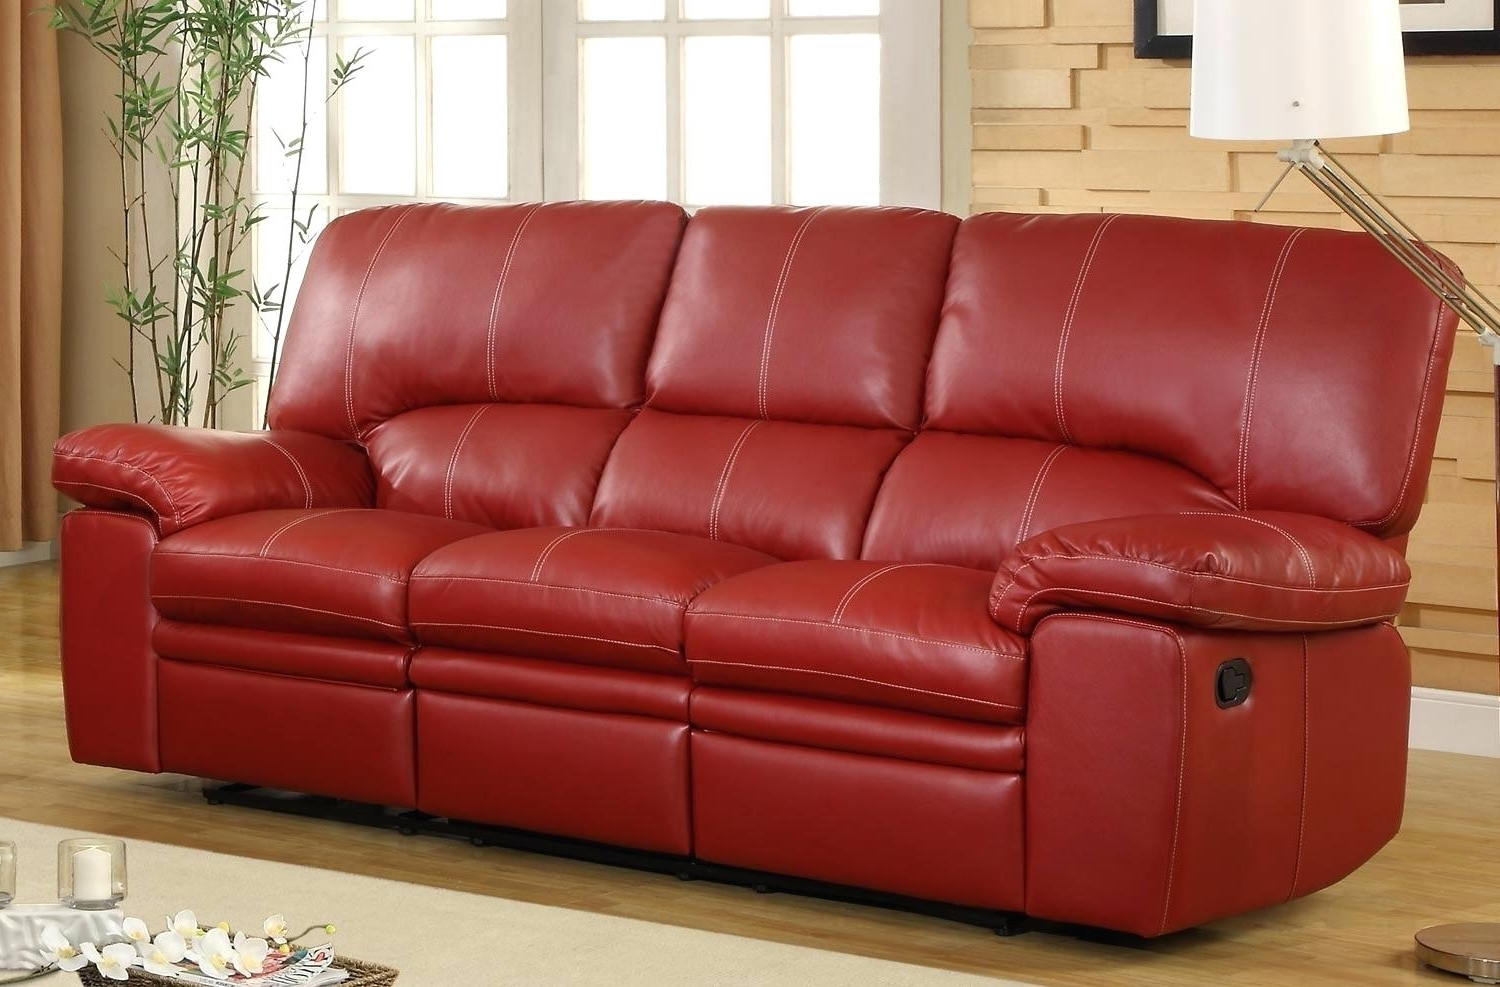 sofas of couch bed sectional ultimate with leather small fabulous modern chaise sofa